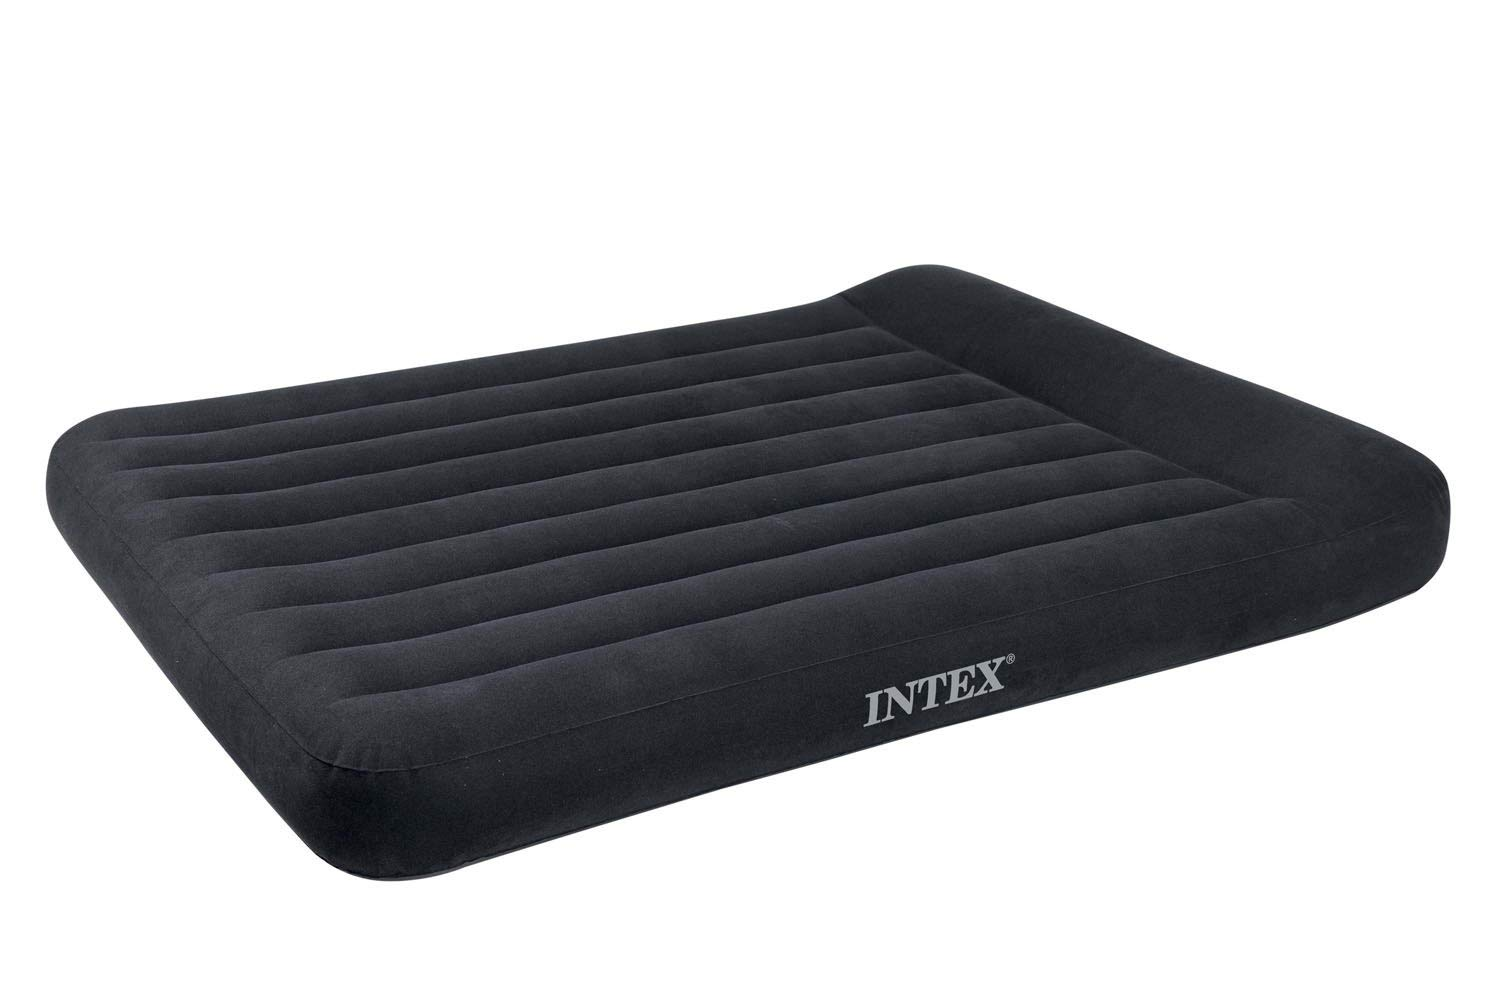 Intex Classic Inflatable Full Dura Beam Air Mattress Bed w/Pillow Rest + Pump